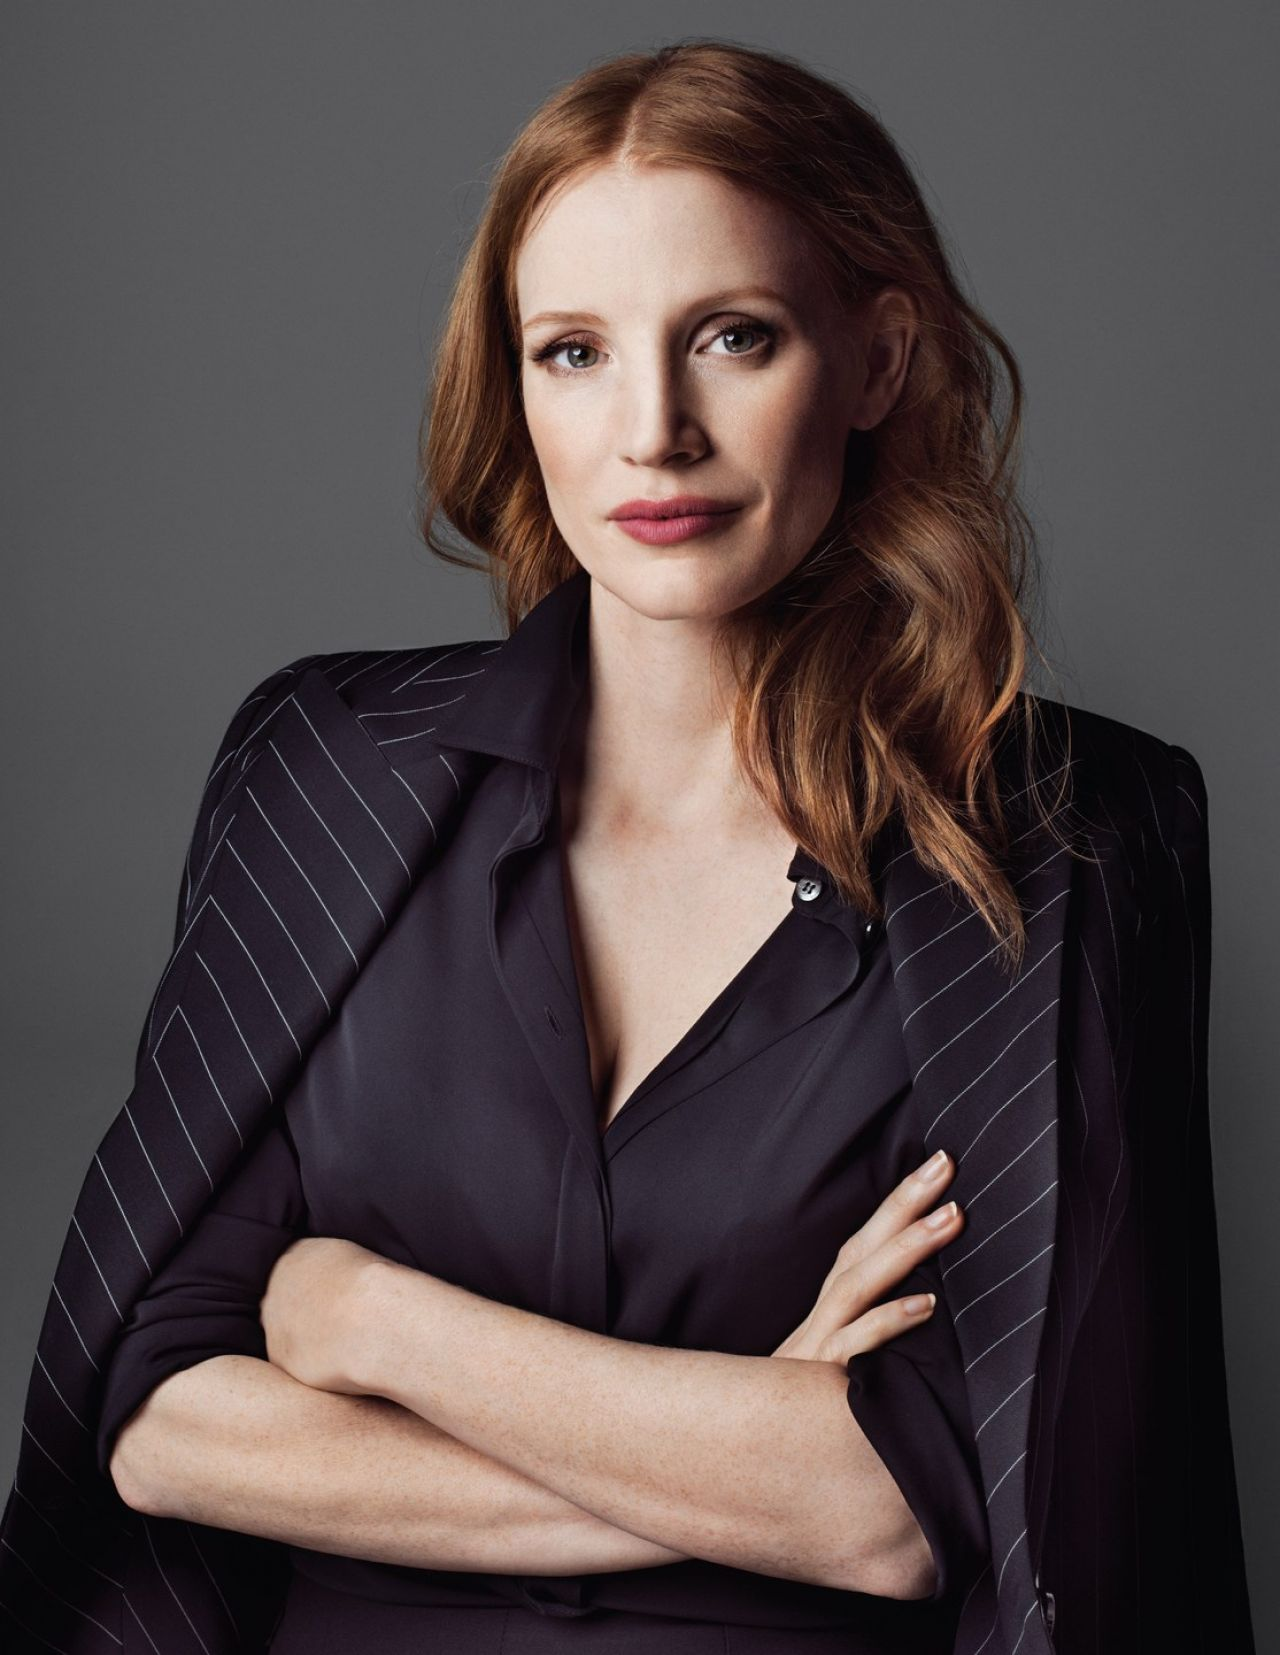 Jessica Chastain Photoshoot For Variety 2017